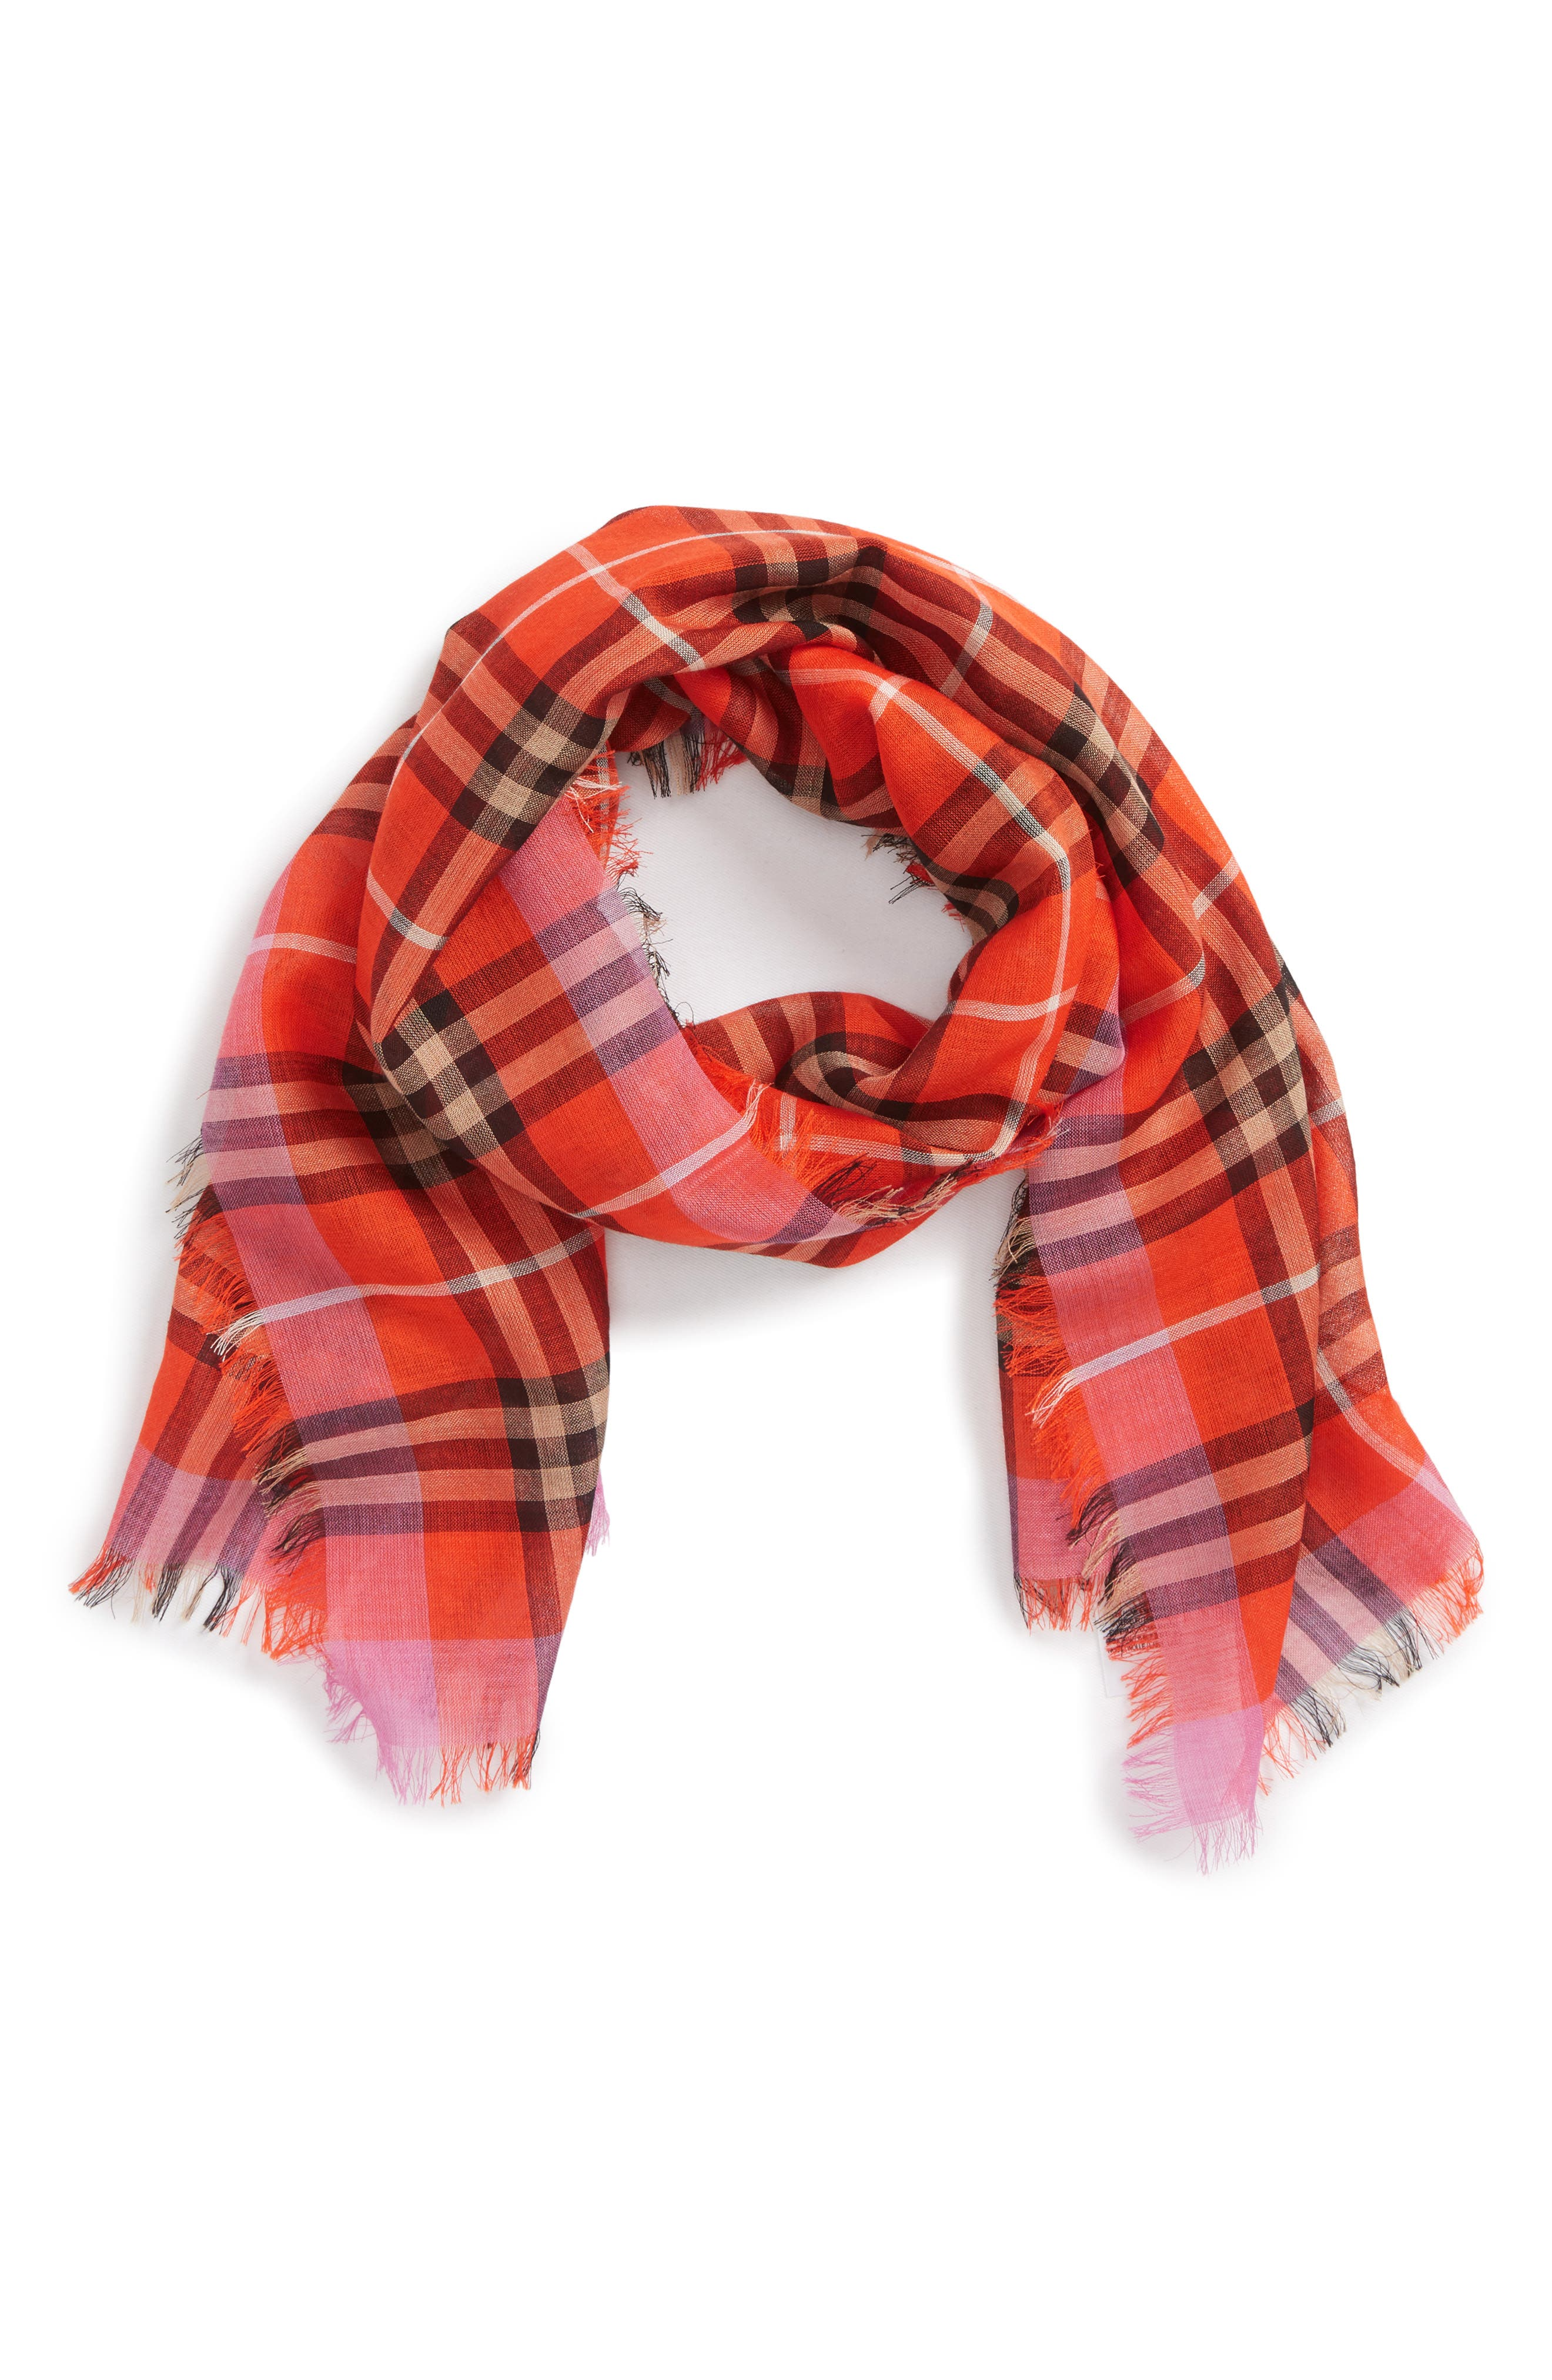 Alternate Image 1 Selected - Burberry Vintage Check Wool & Silk Blend Scarf (Girls)